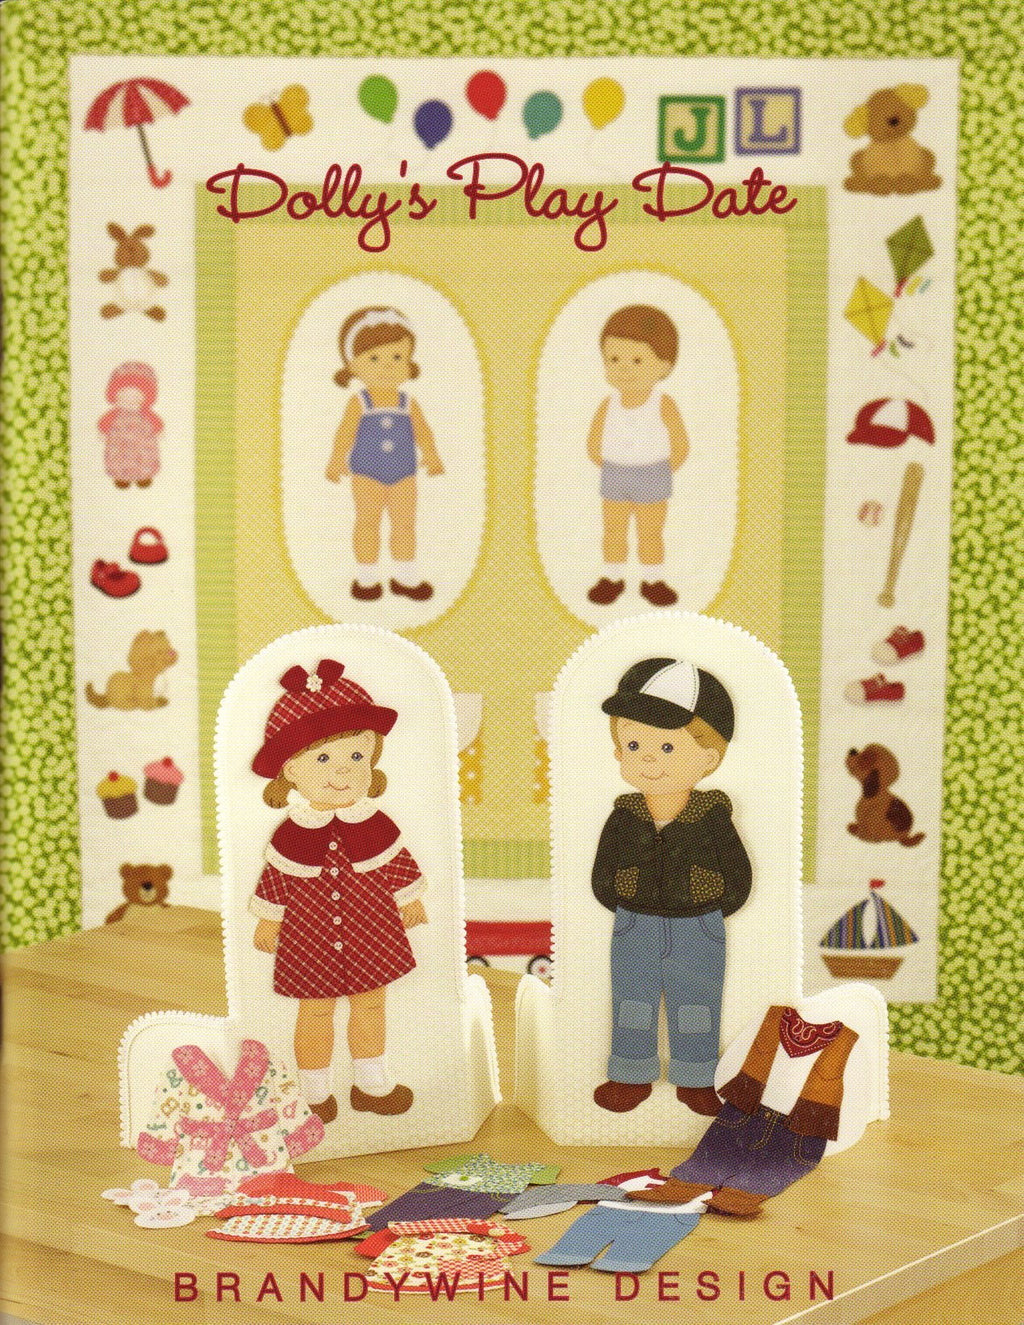 Dolly's Play Date